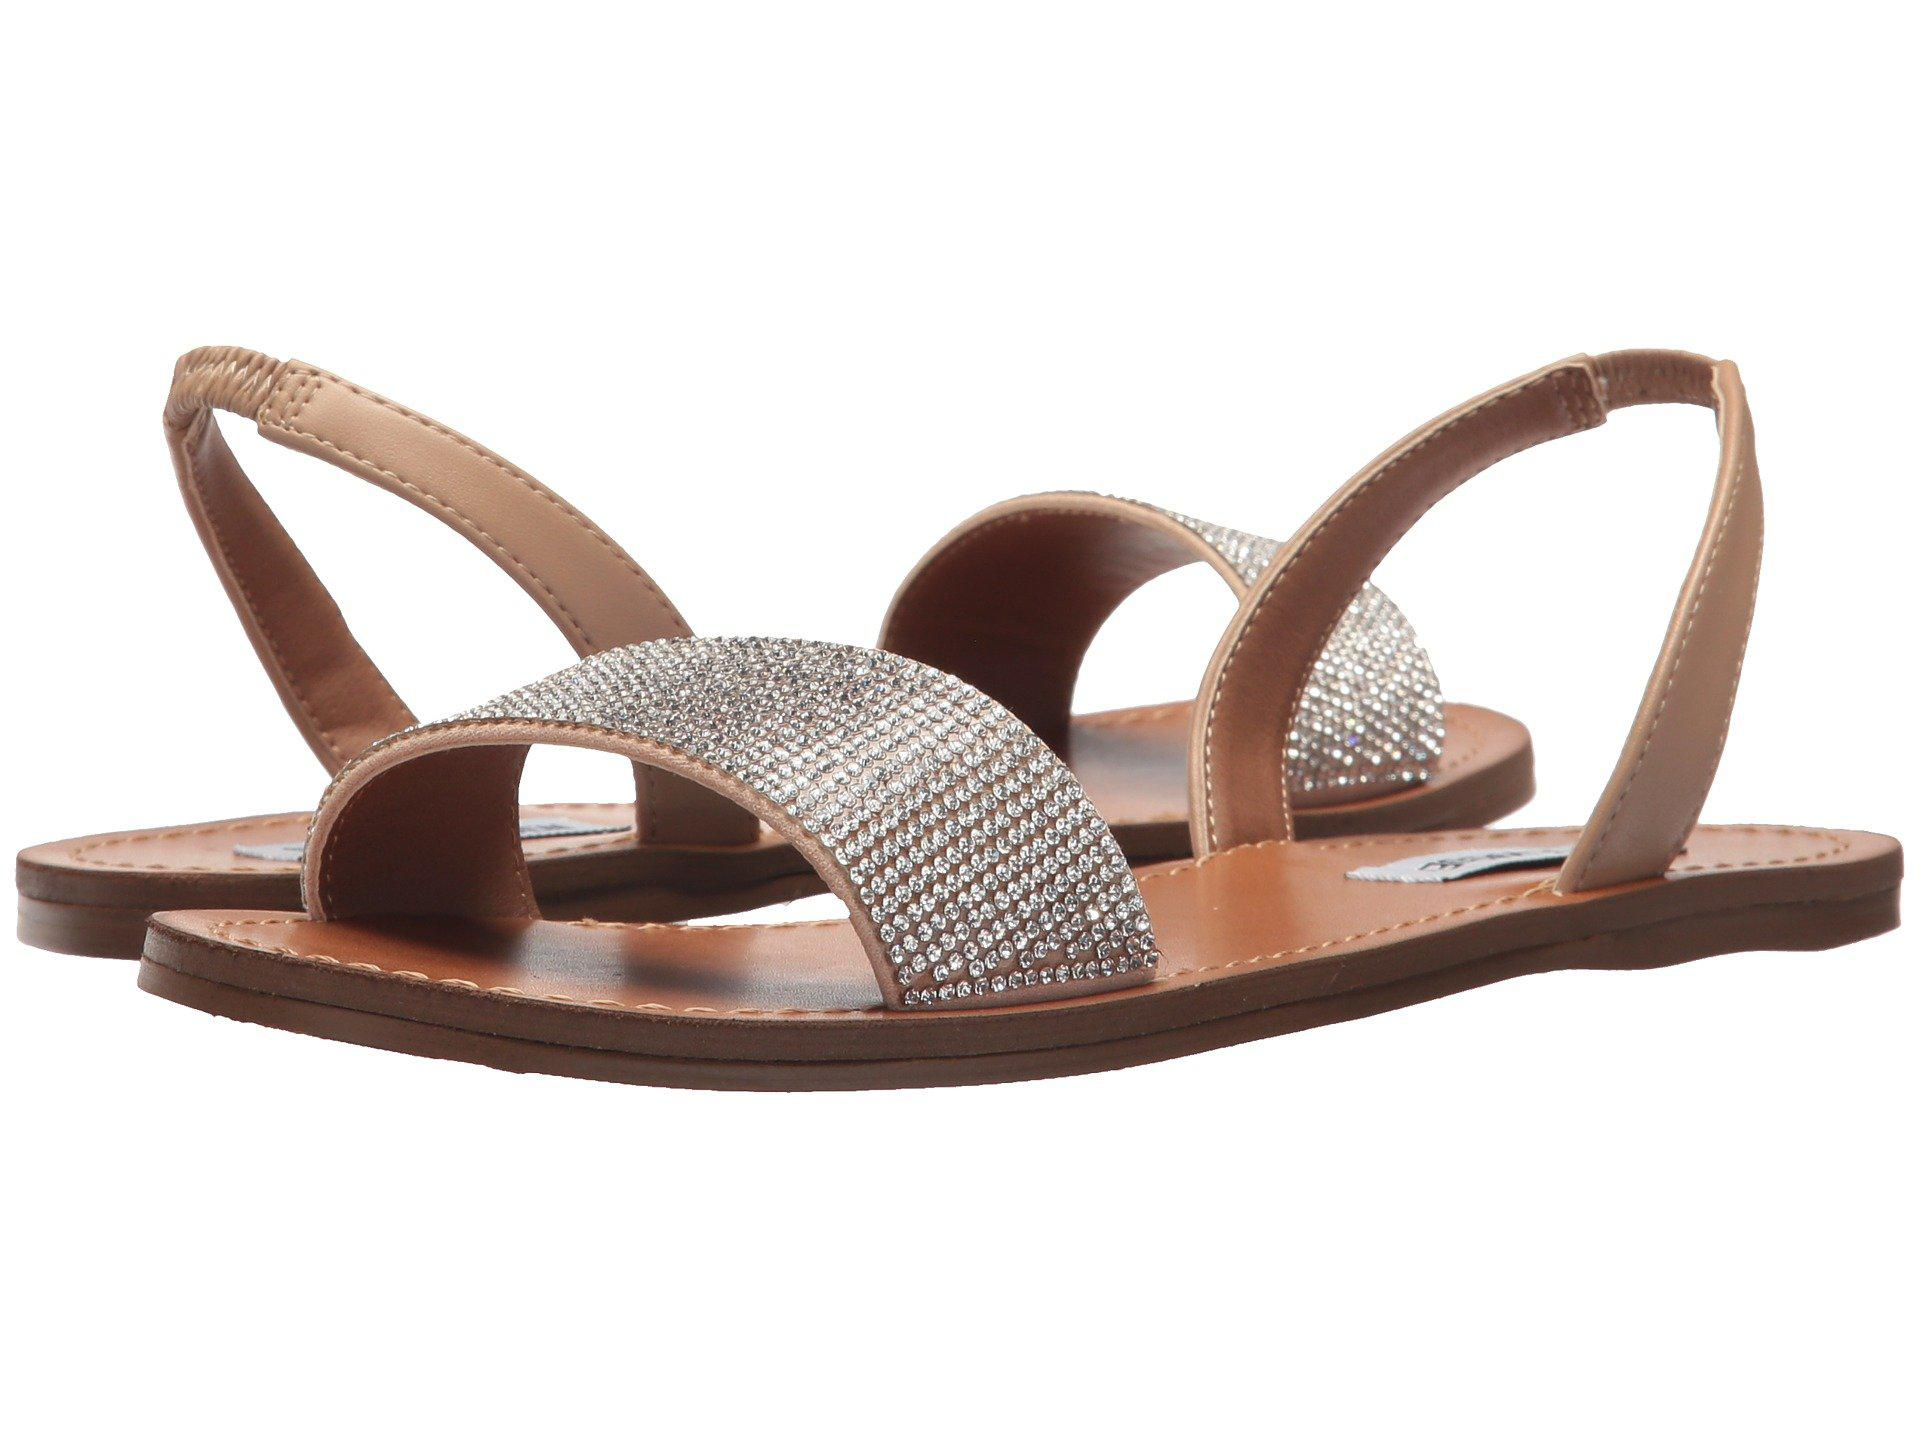 30d7279e84d8 Lyst - Steve Madden Rock Sandal in Brown - Save 26%